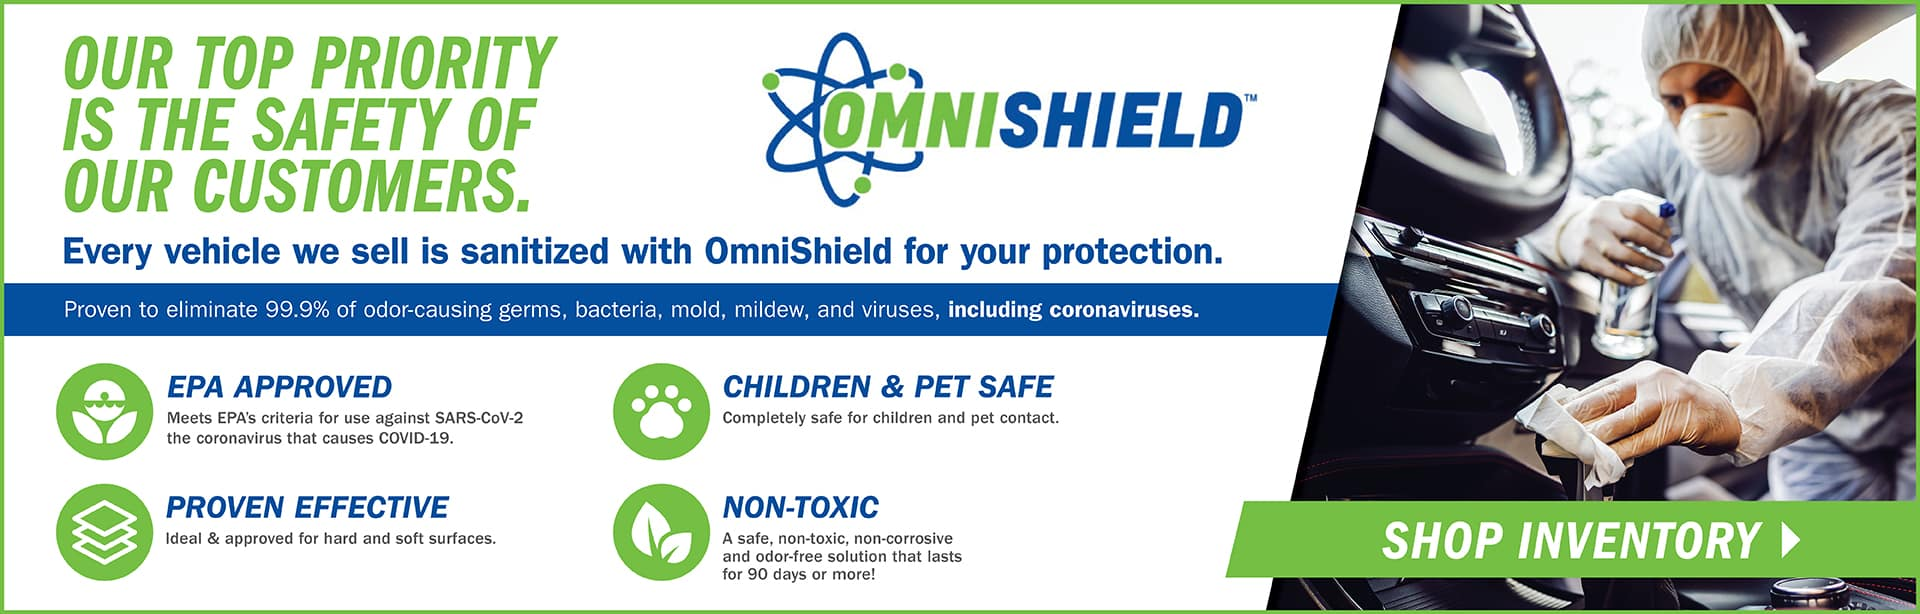 Omnishield protection